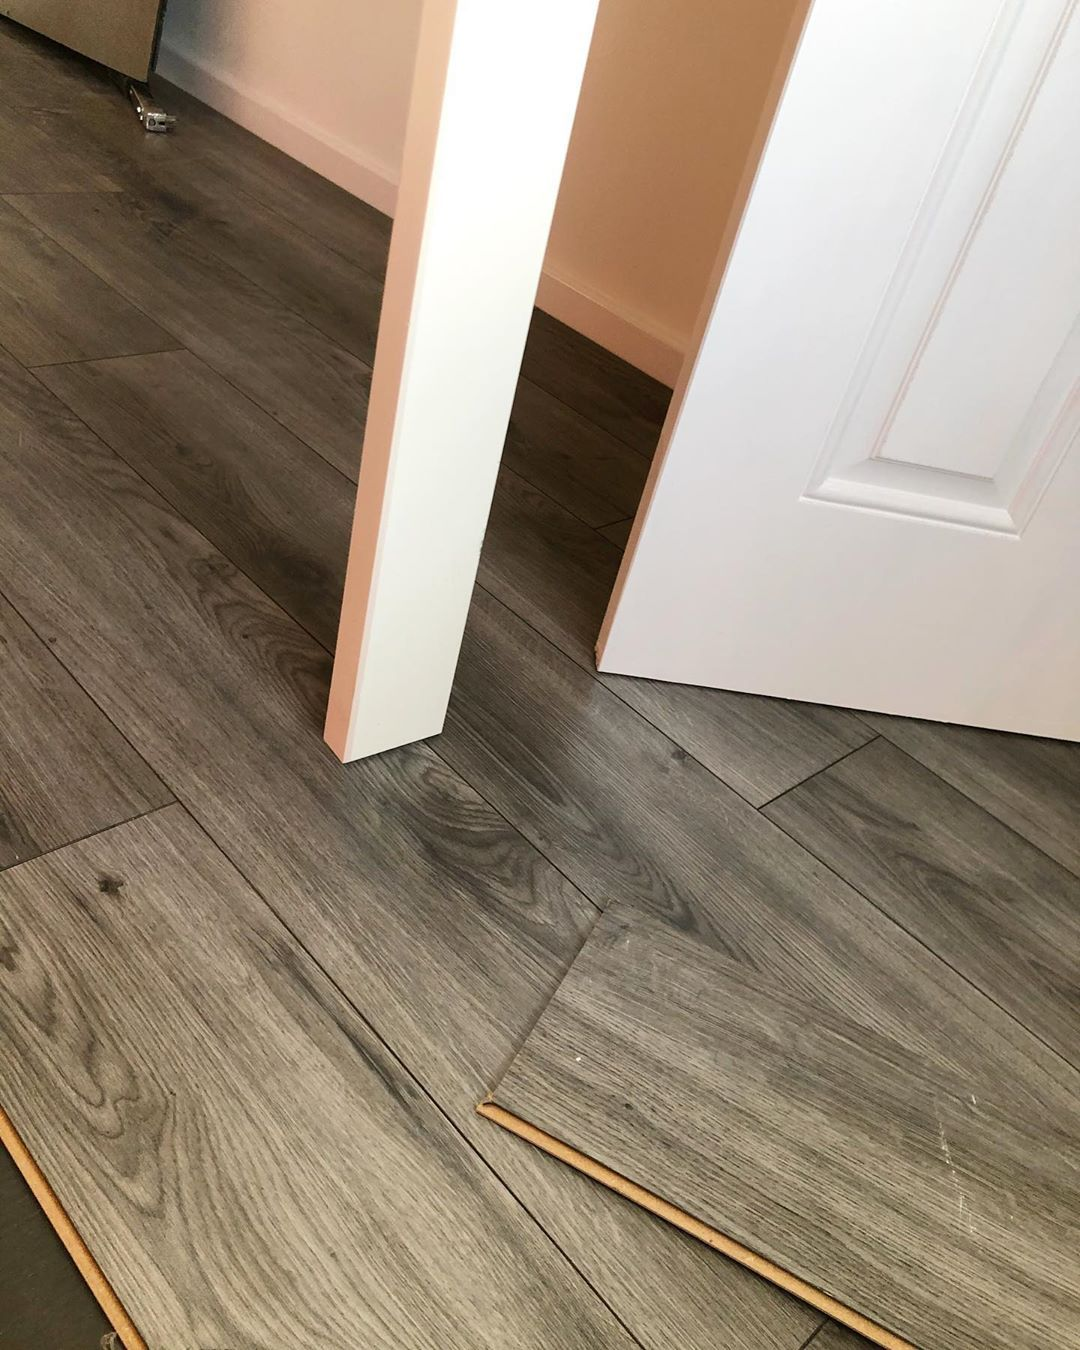 For All Your Flooring Needs Make Sure To Get In Touch With Us This Week Daneba In 2020 Flooring Carpet Installation How To Make